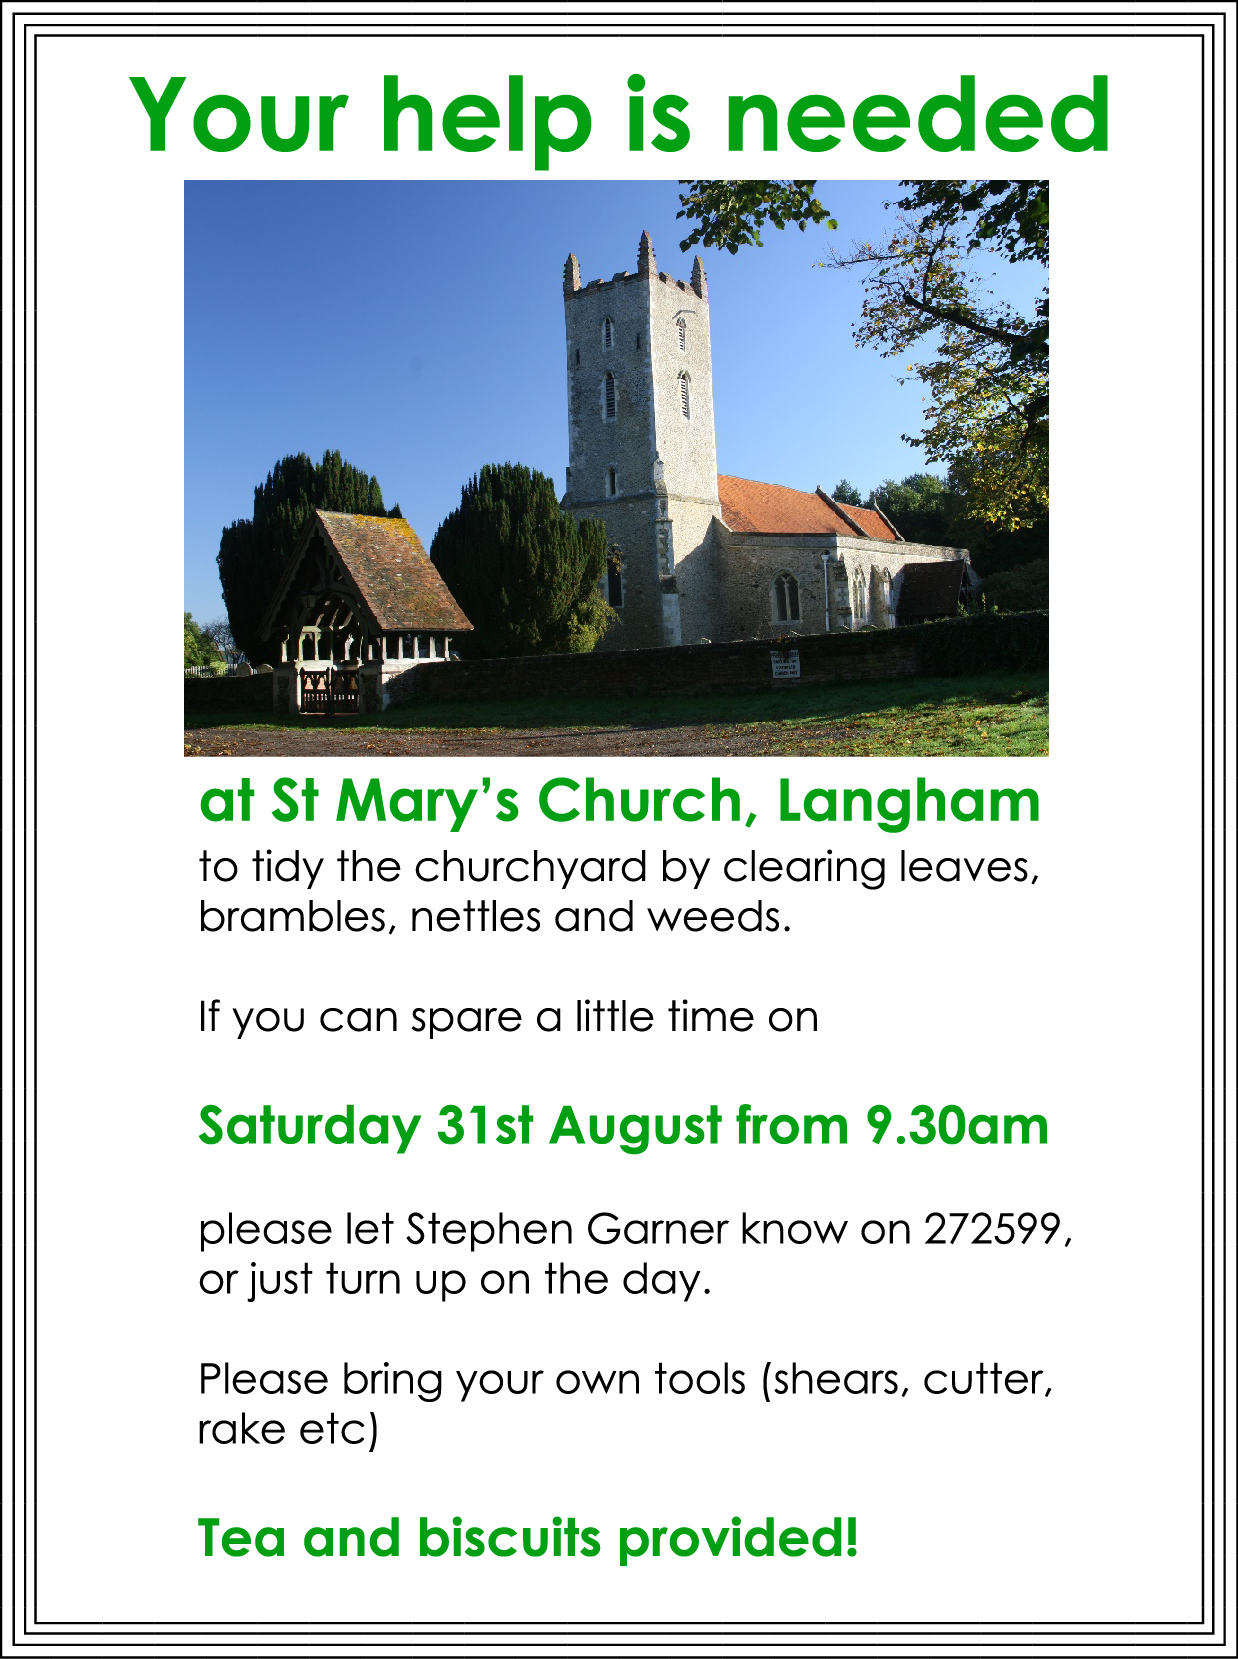 Your help is needed at St Mary's Church, Langham to tidy up the churchyard by clearing leaves, brambles, nettles and weeds. If you can spare a little time on Saturday 31st August from 9.30am please let Stephen Garner know on 272599 or just turn up on the day. Please bring your own tools. Tea and biscuits provided!